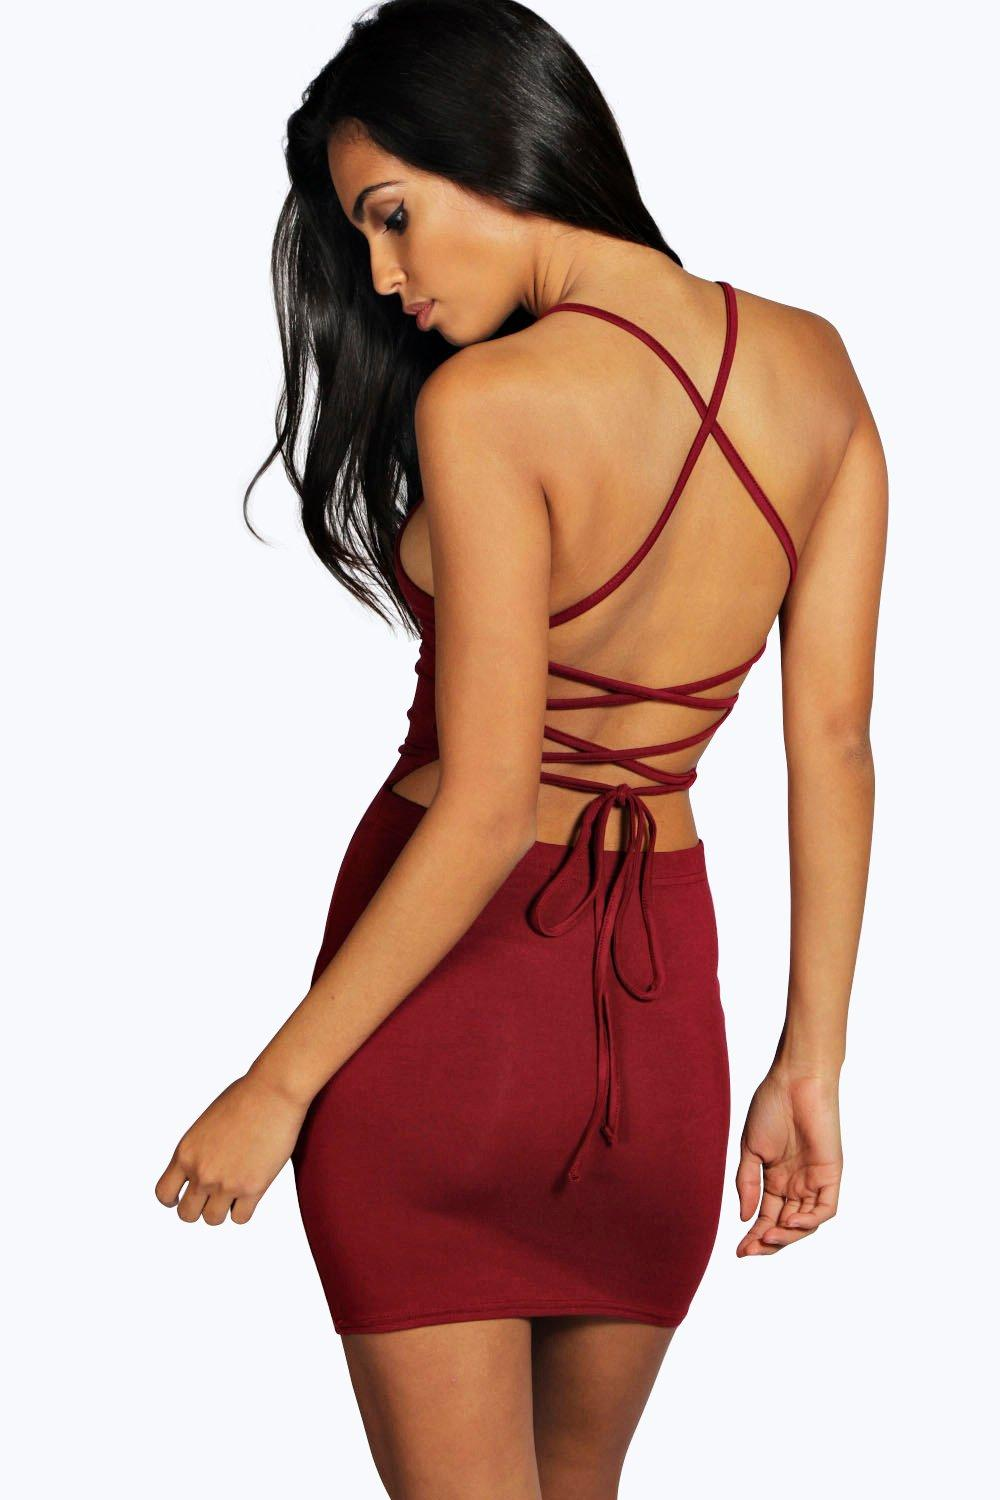 IKRUSH bring you the latest in celebrity-inspired women's clothing, shoes & accessories. Stay ahead of the trends with an amazing range of women's dresses and women's shoes offering all the latest fashion trends at unbelievably low prices with free or cheap delivery.